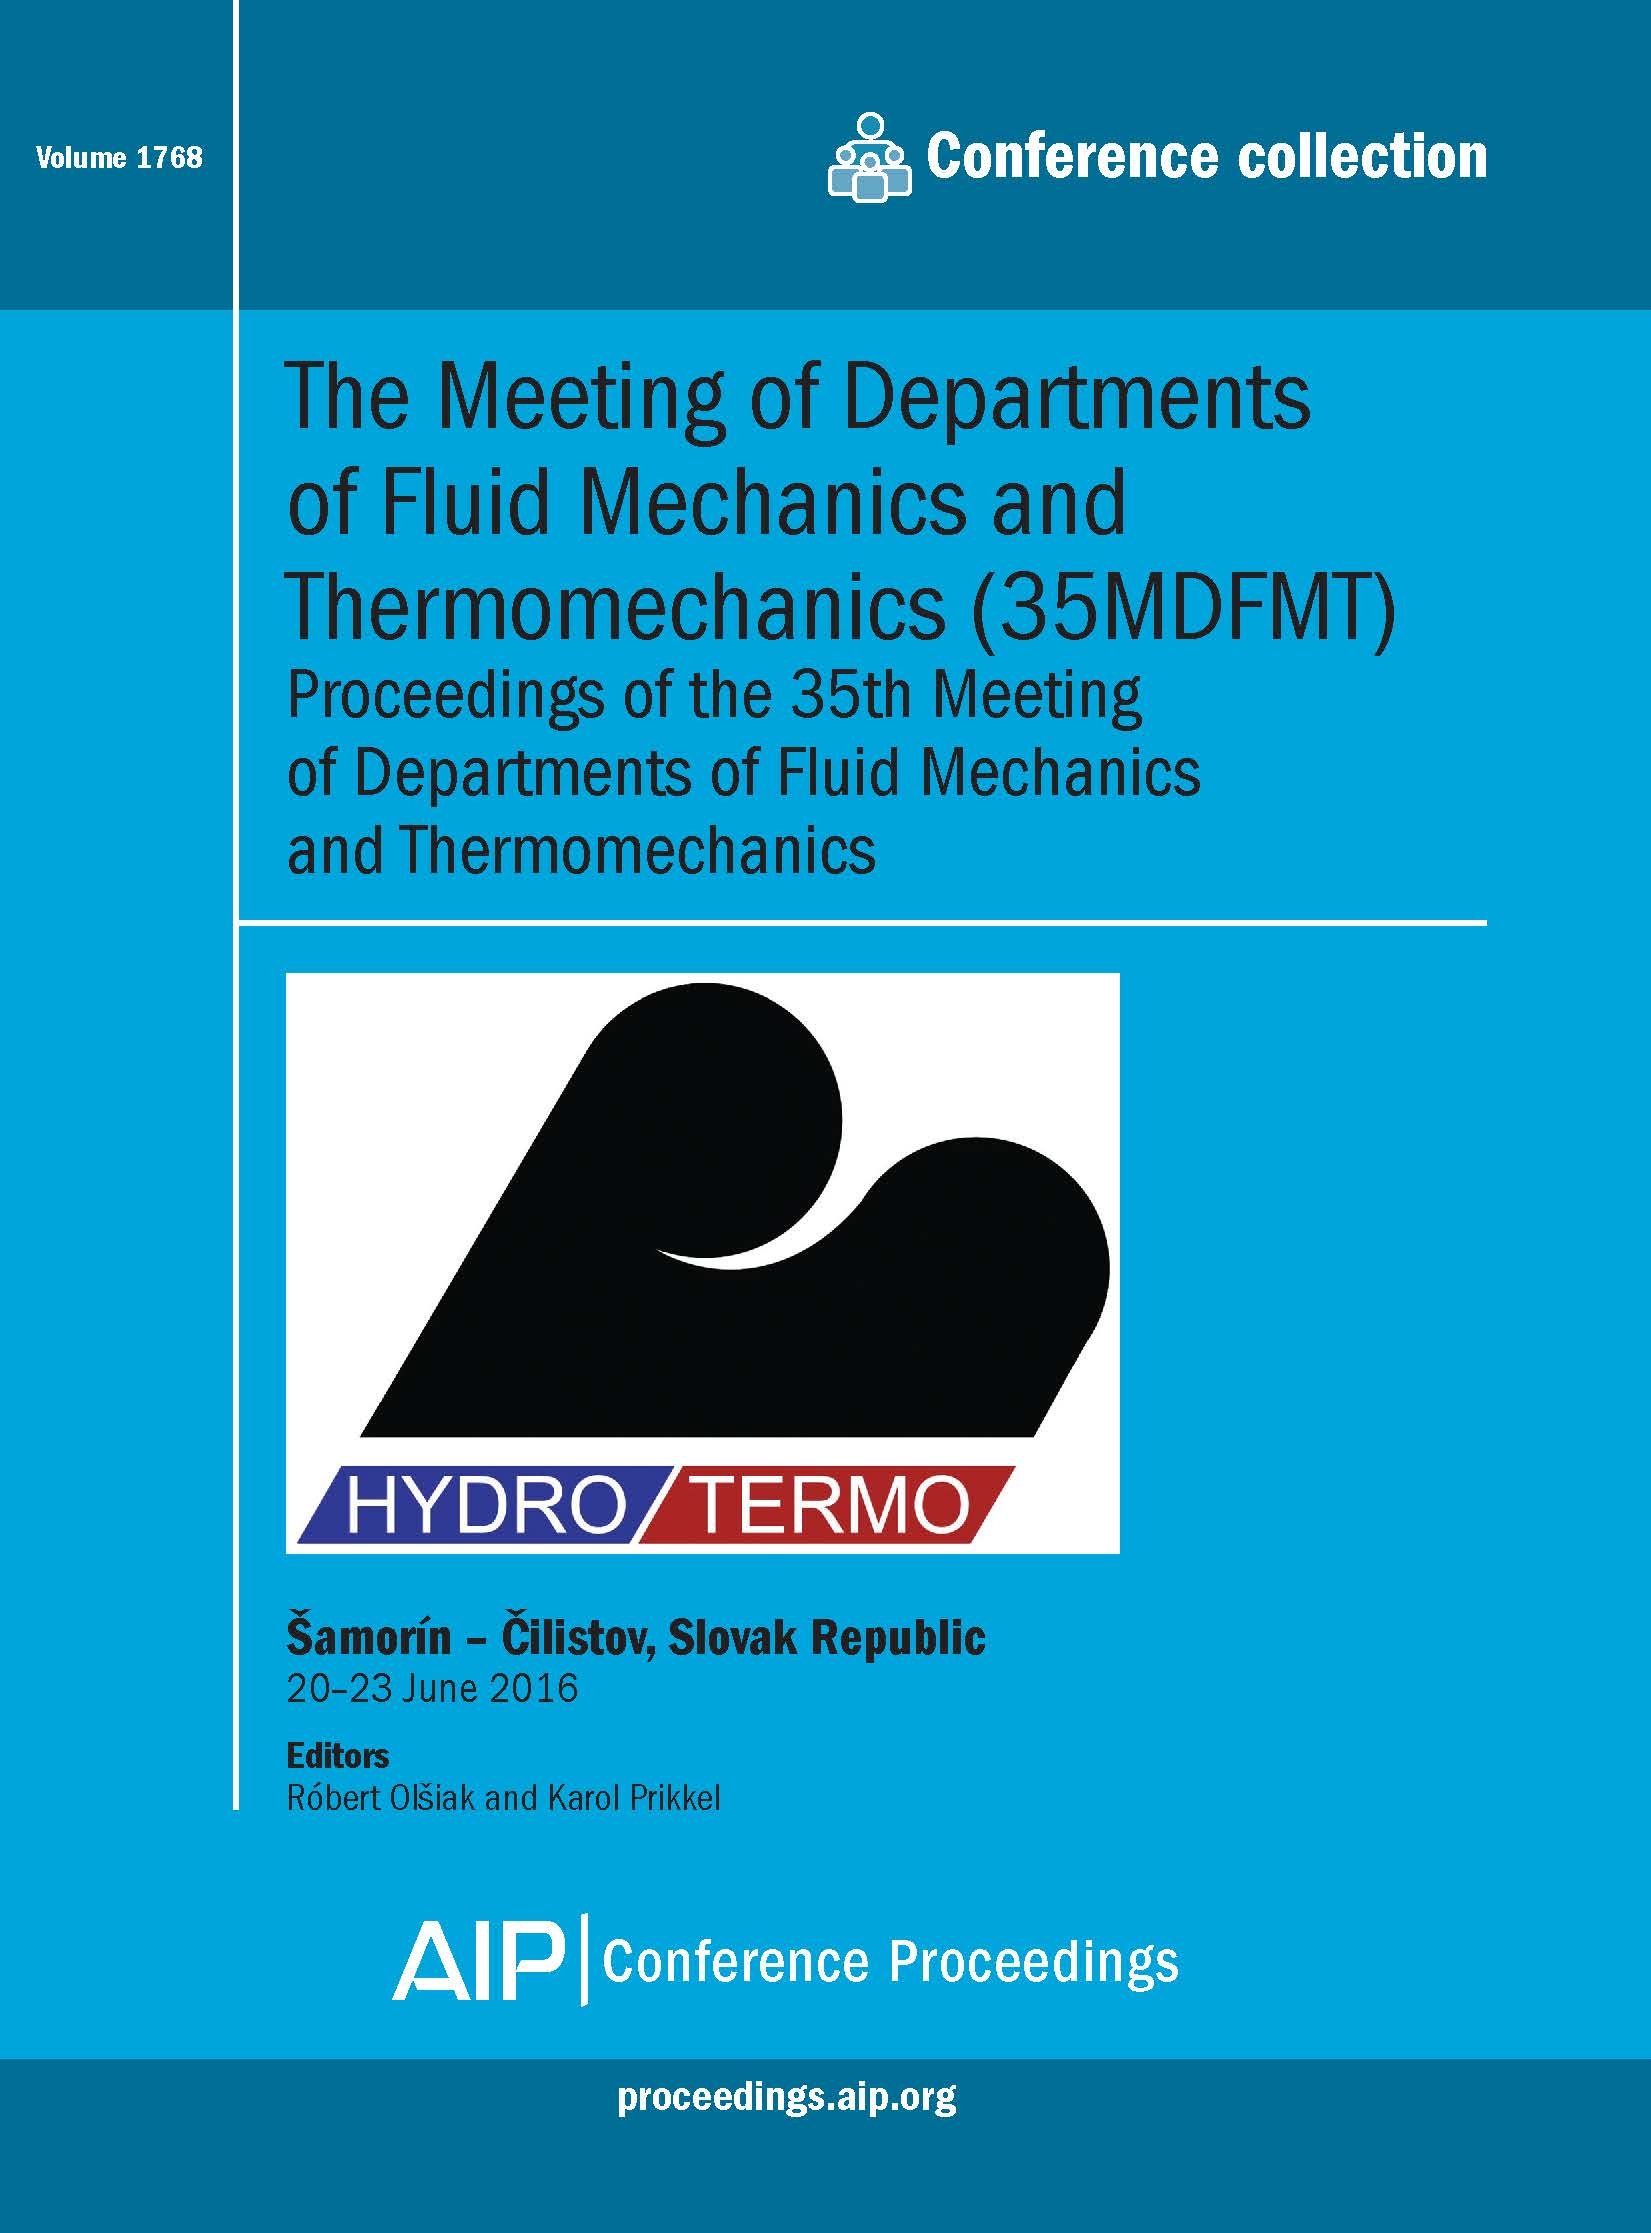 Volume 1768: The Meeting of Departments of Fluid Mechanics and